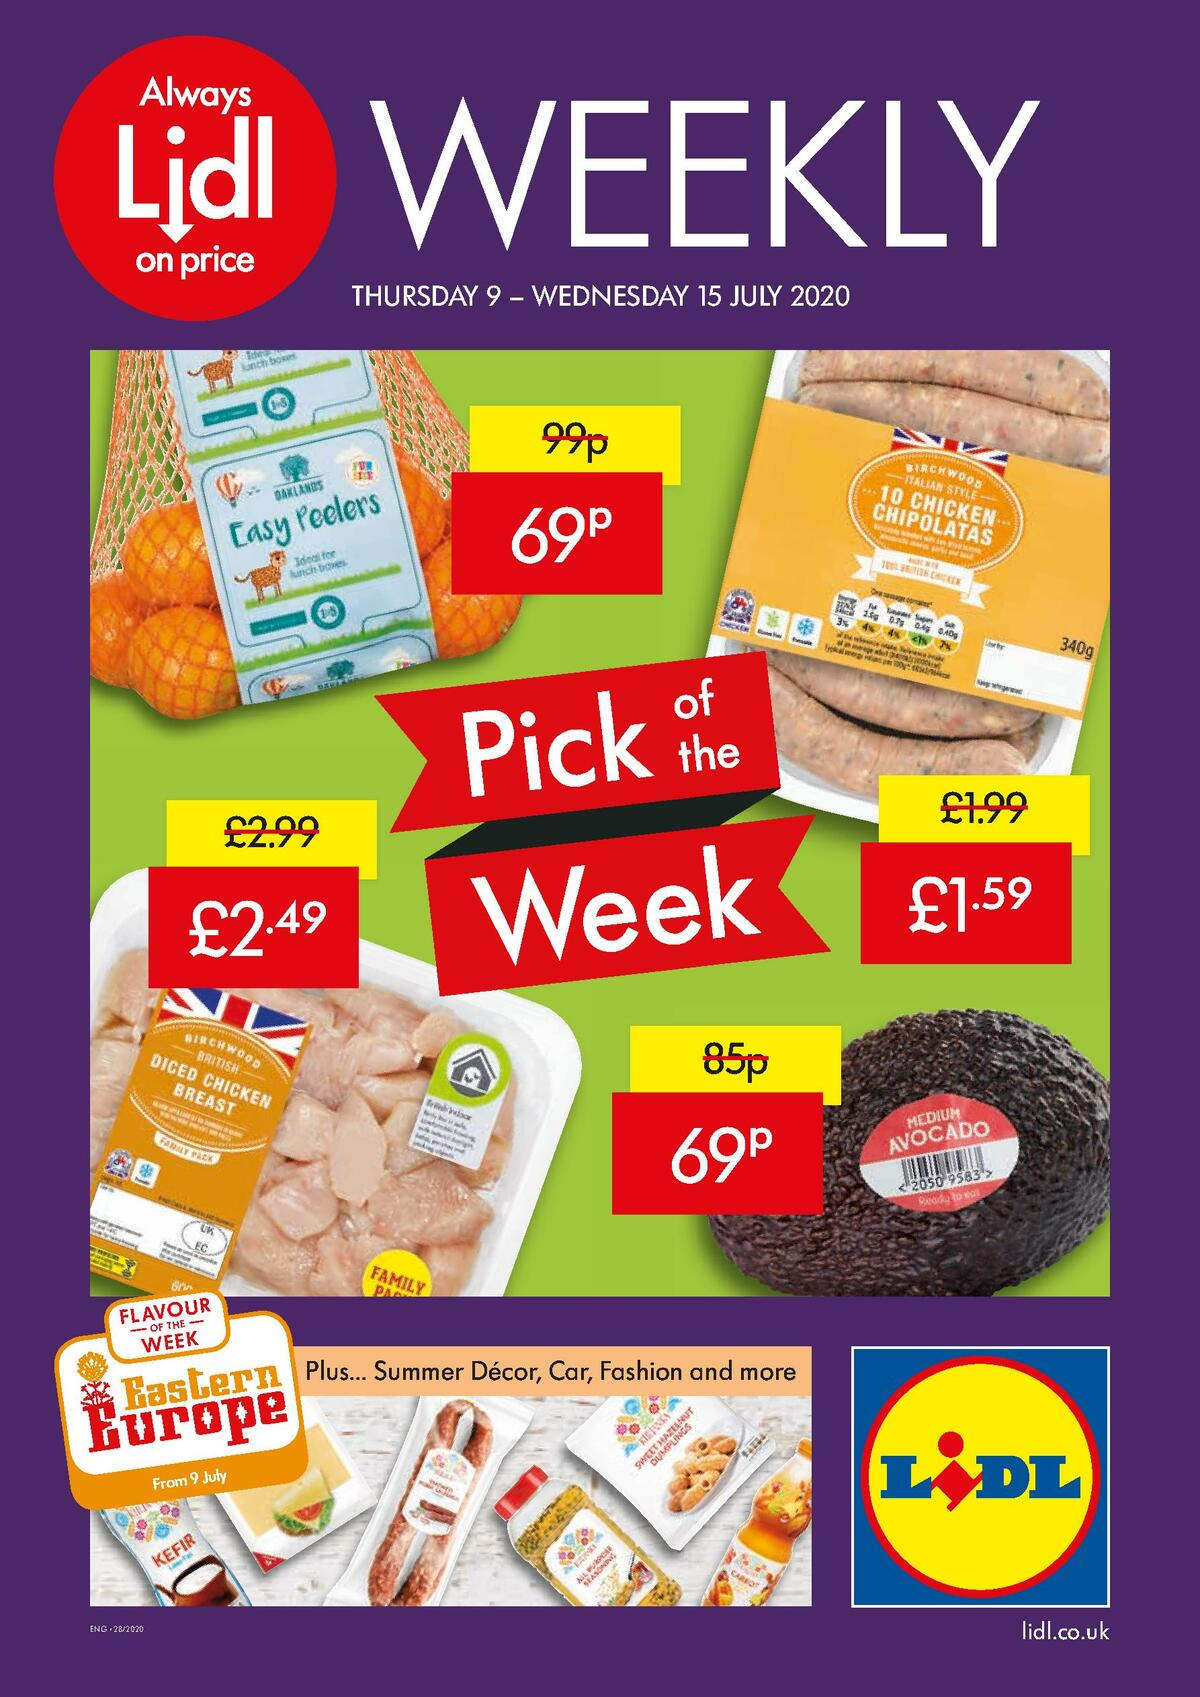 LIDL Offers from July 9